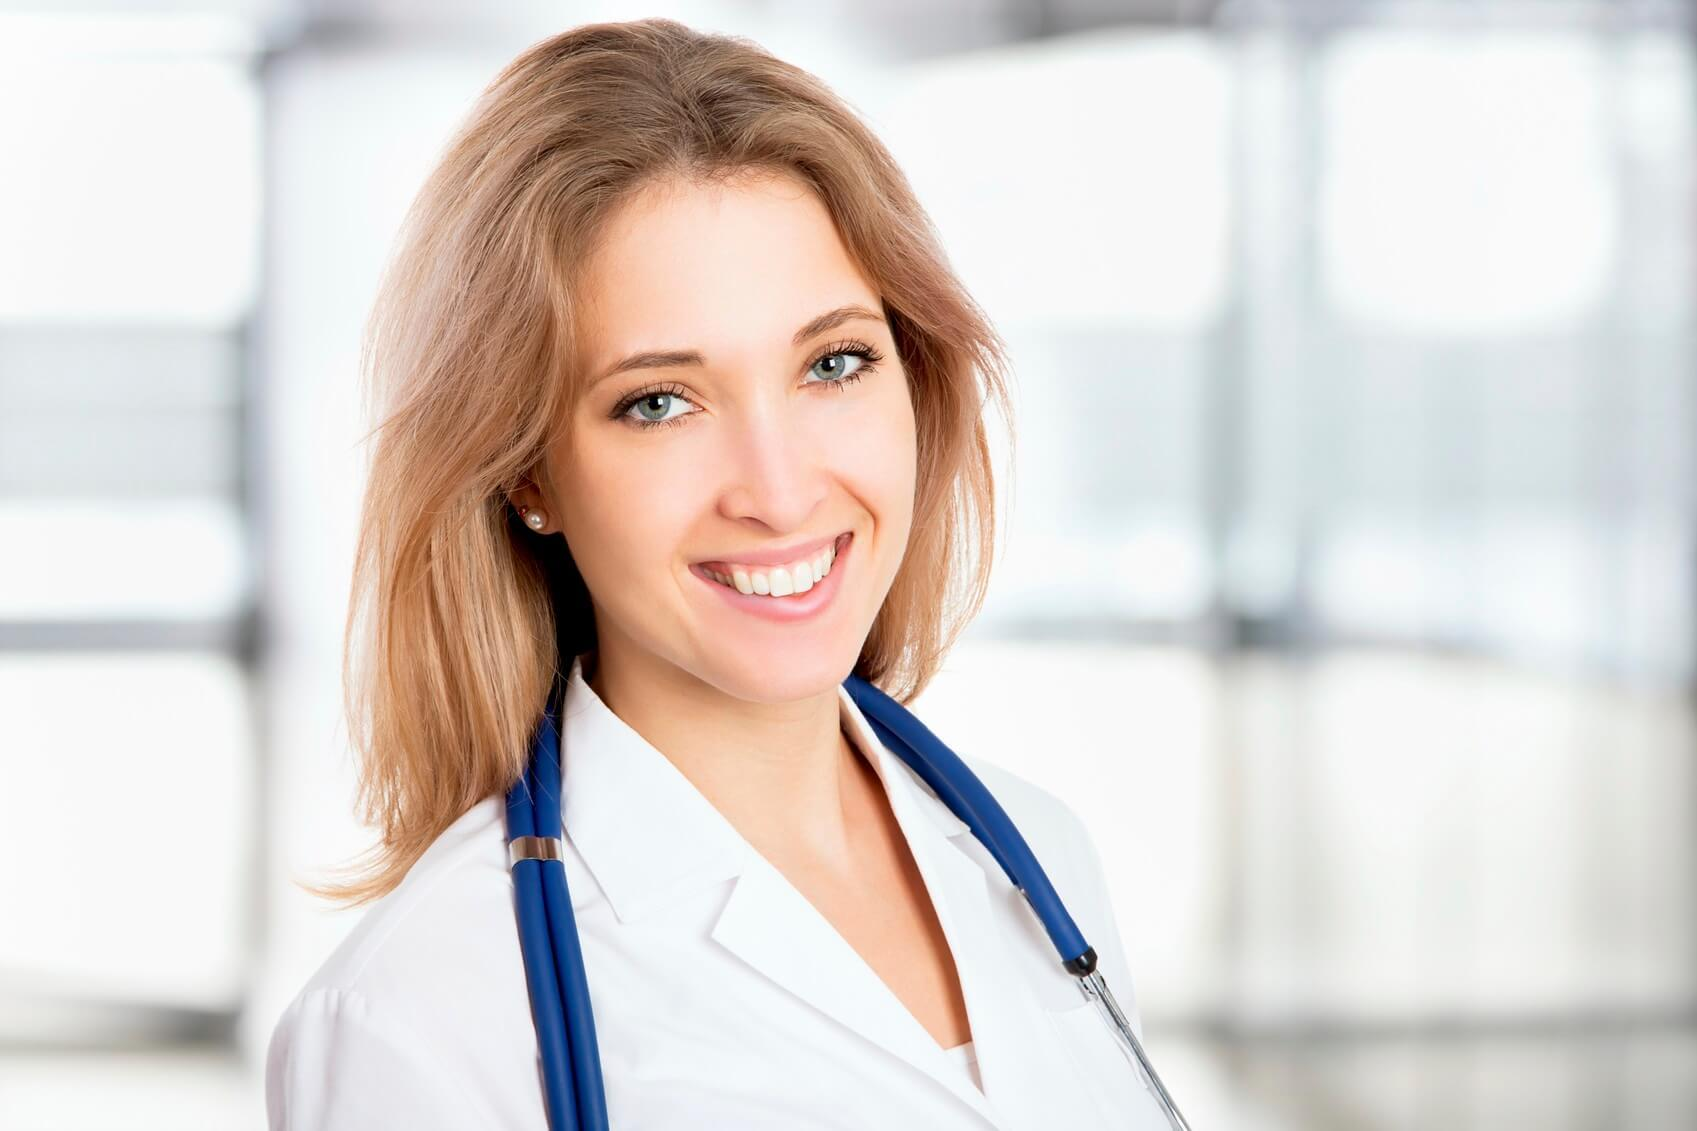 Female Physician working as a psychiatrist in New Zealand